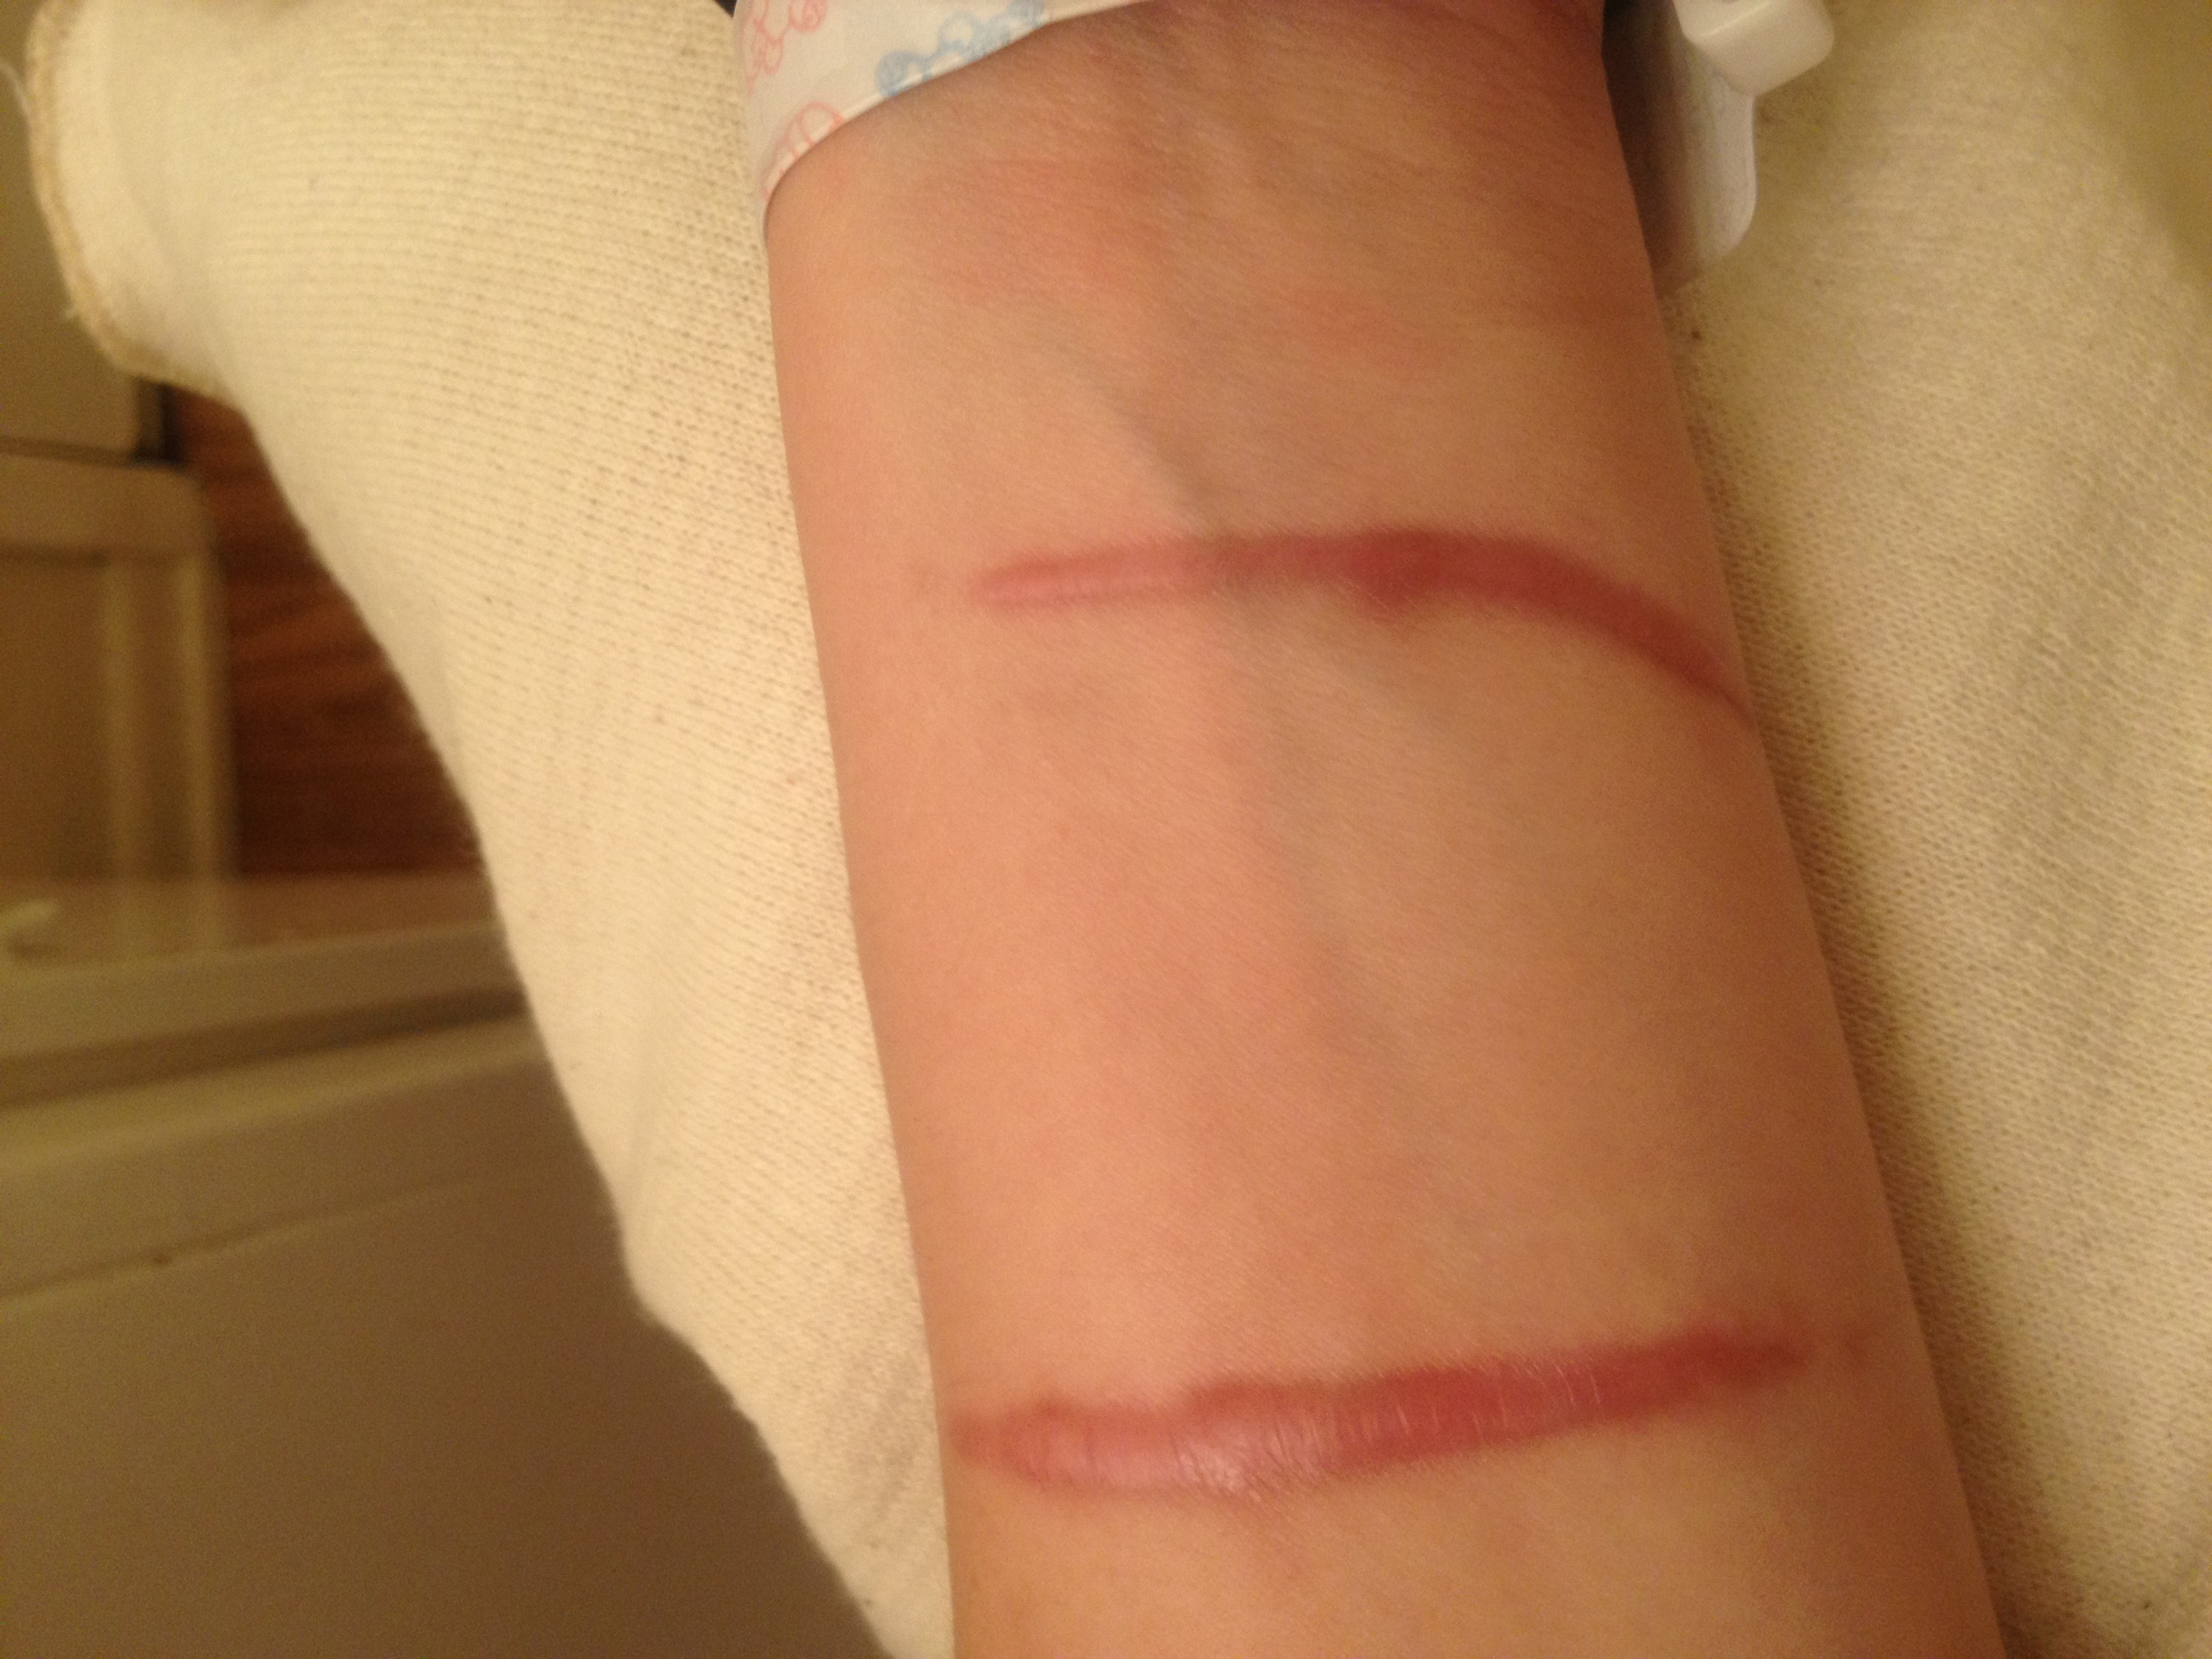 Hypertrophic scar -4 months after incident- 2013-04-05 00-46.jpg